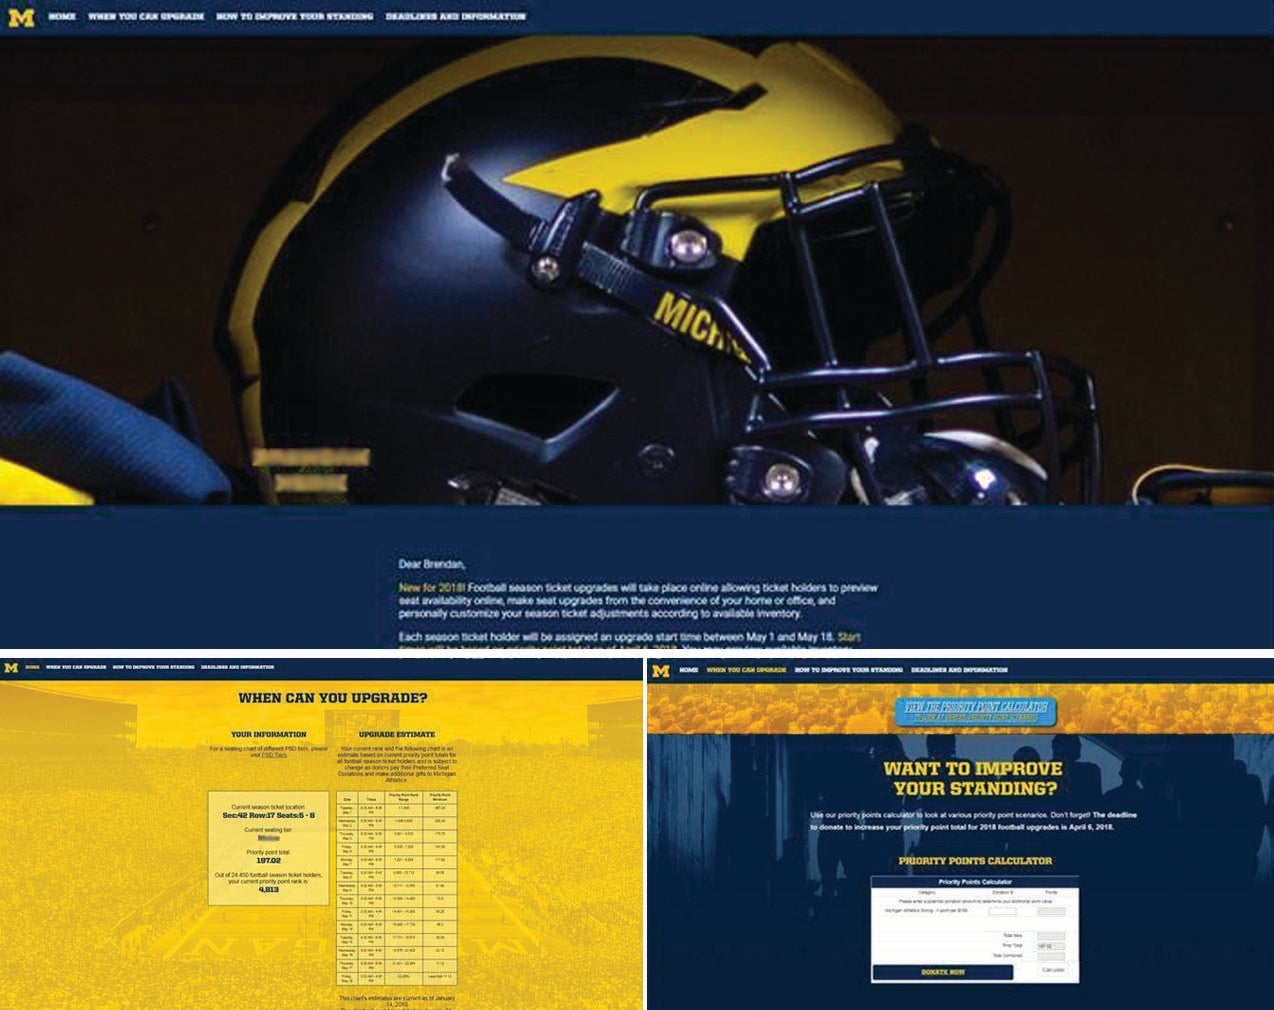 More Info for Michigan Wows Fans with their PURLS